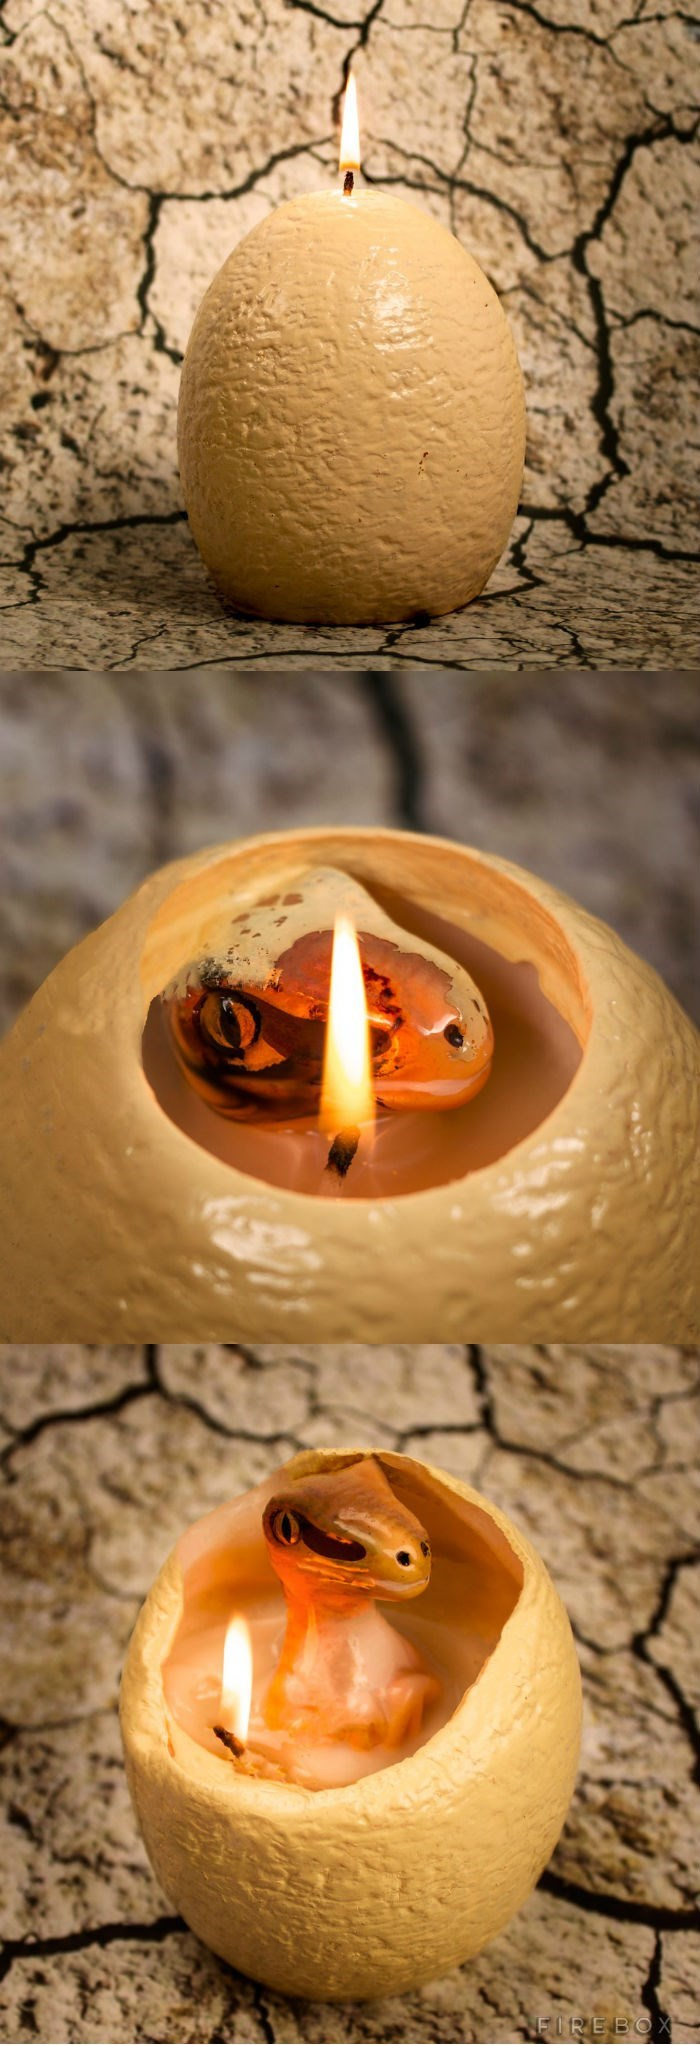 cute dinosaur candle that hatches while you burn it